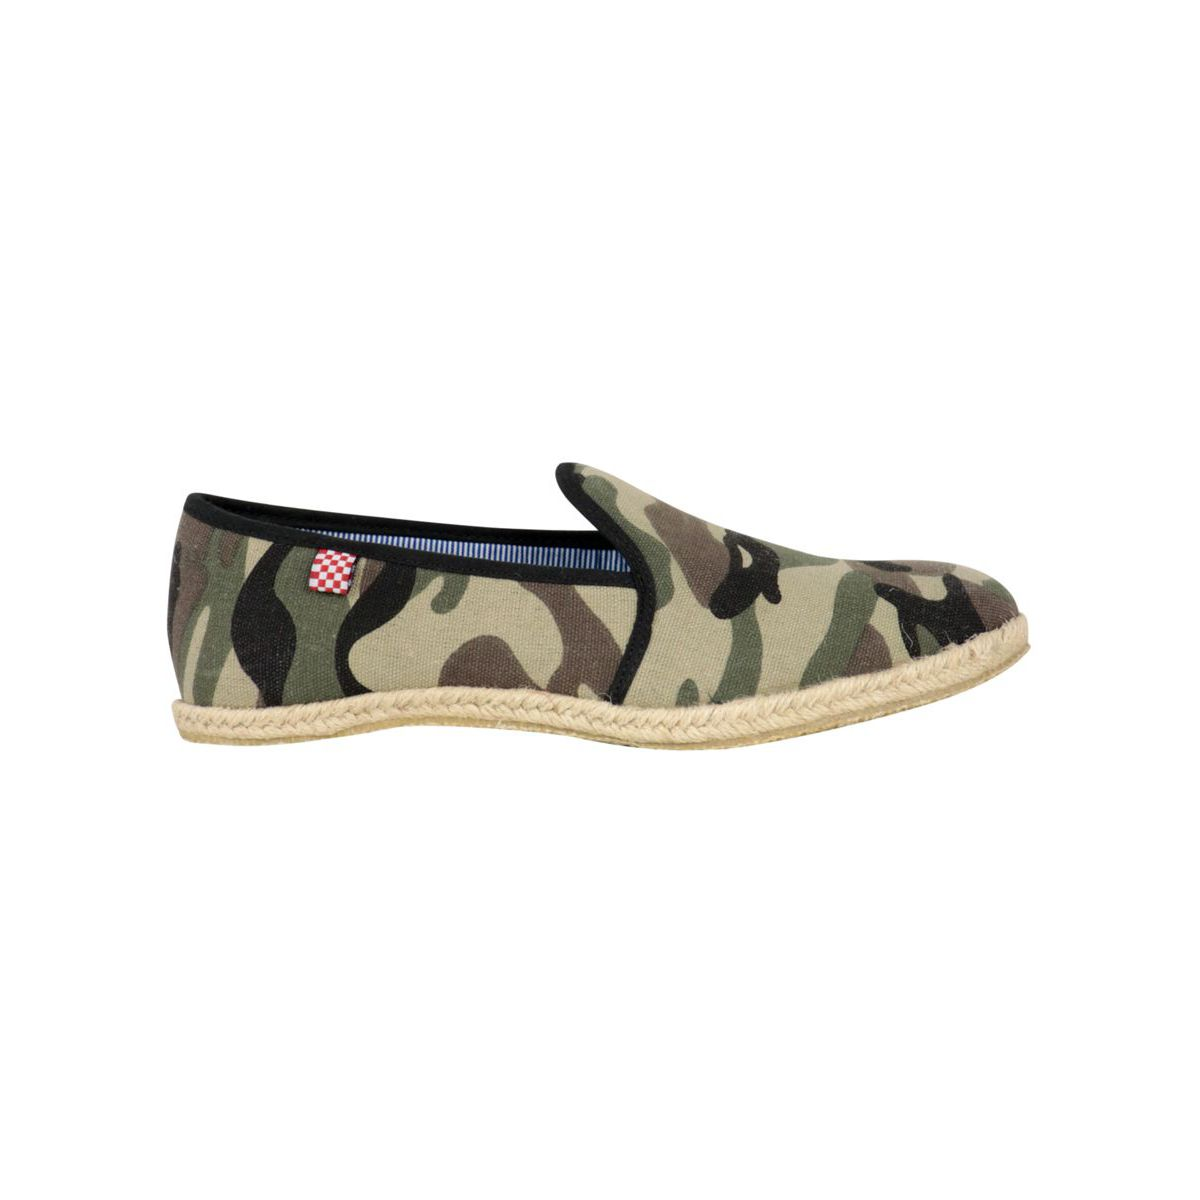 Mimetic canvas espadrilles Camouflage MC2 Saint Barth